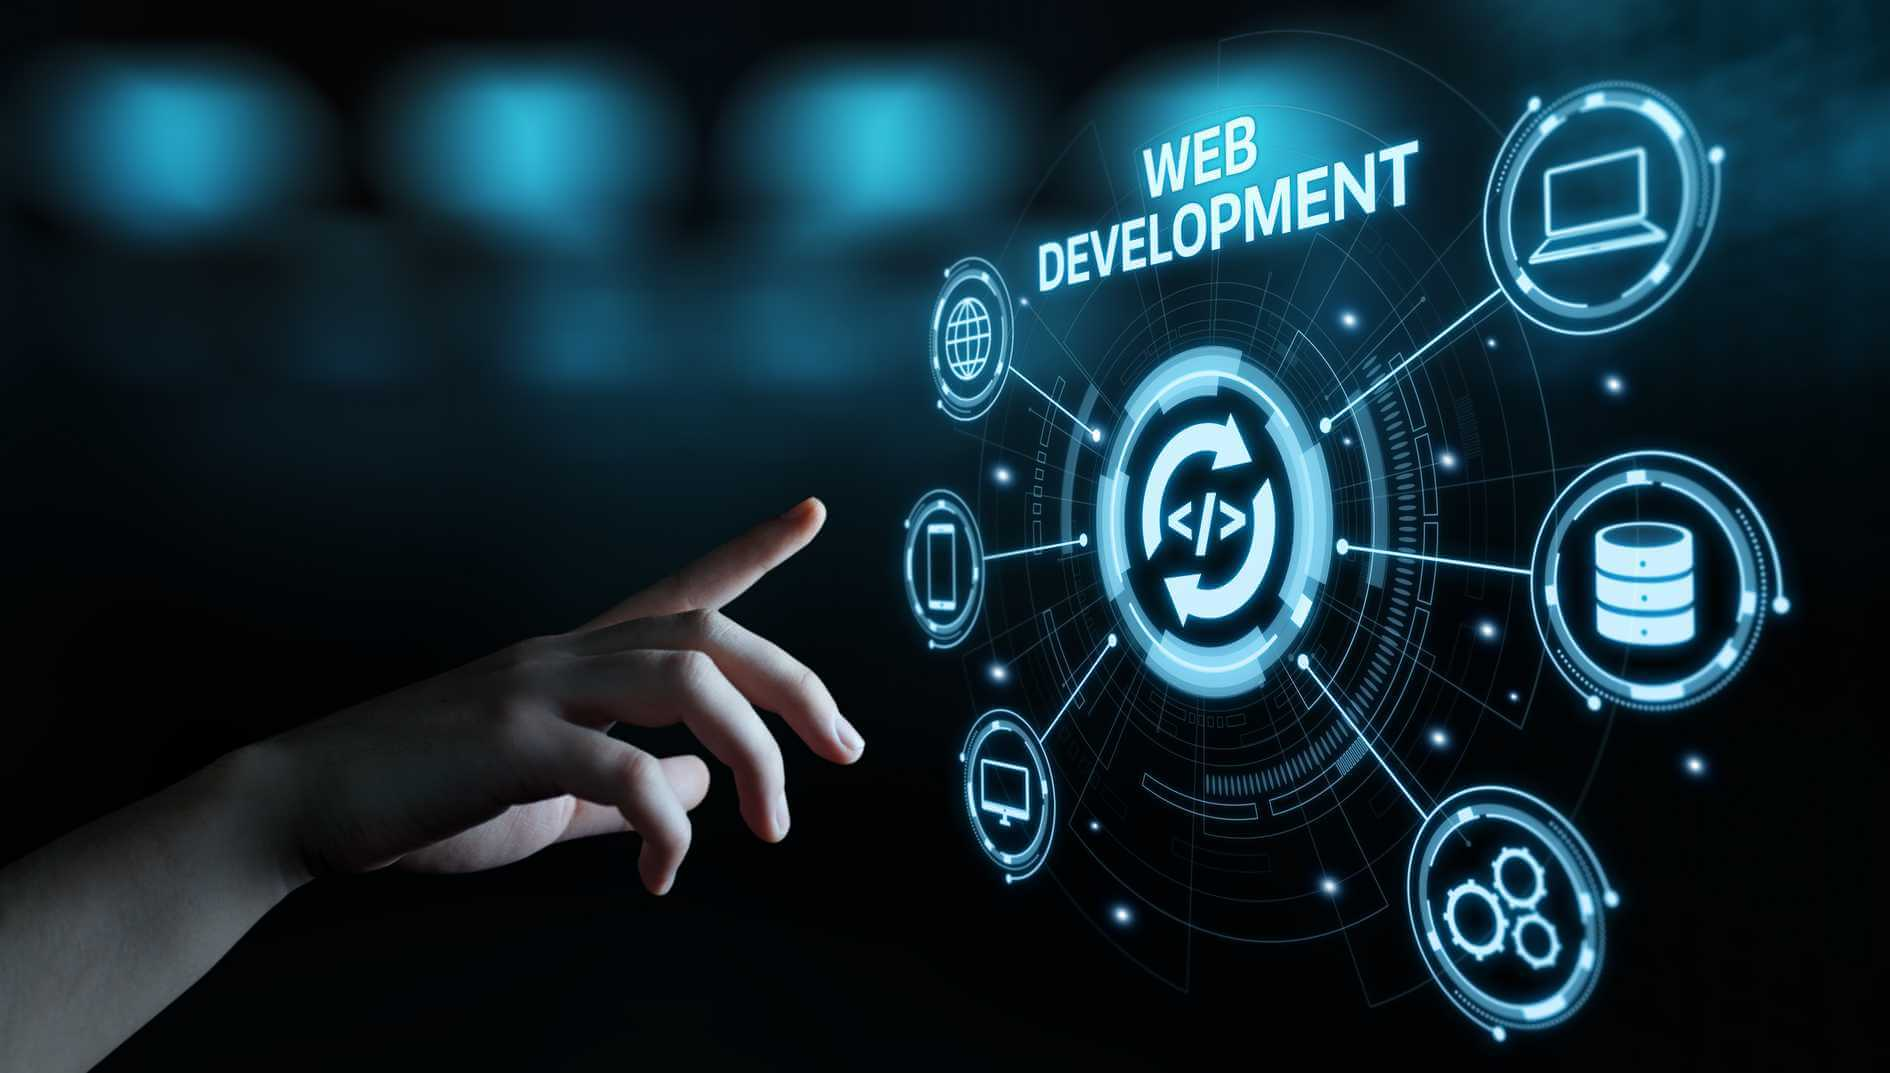 Enterprise Web Development Services and Support